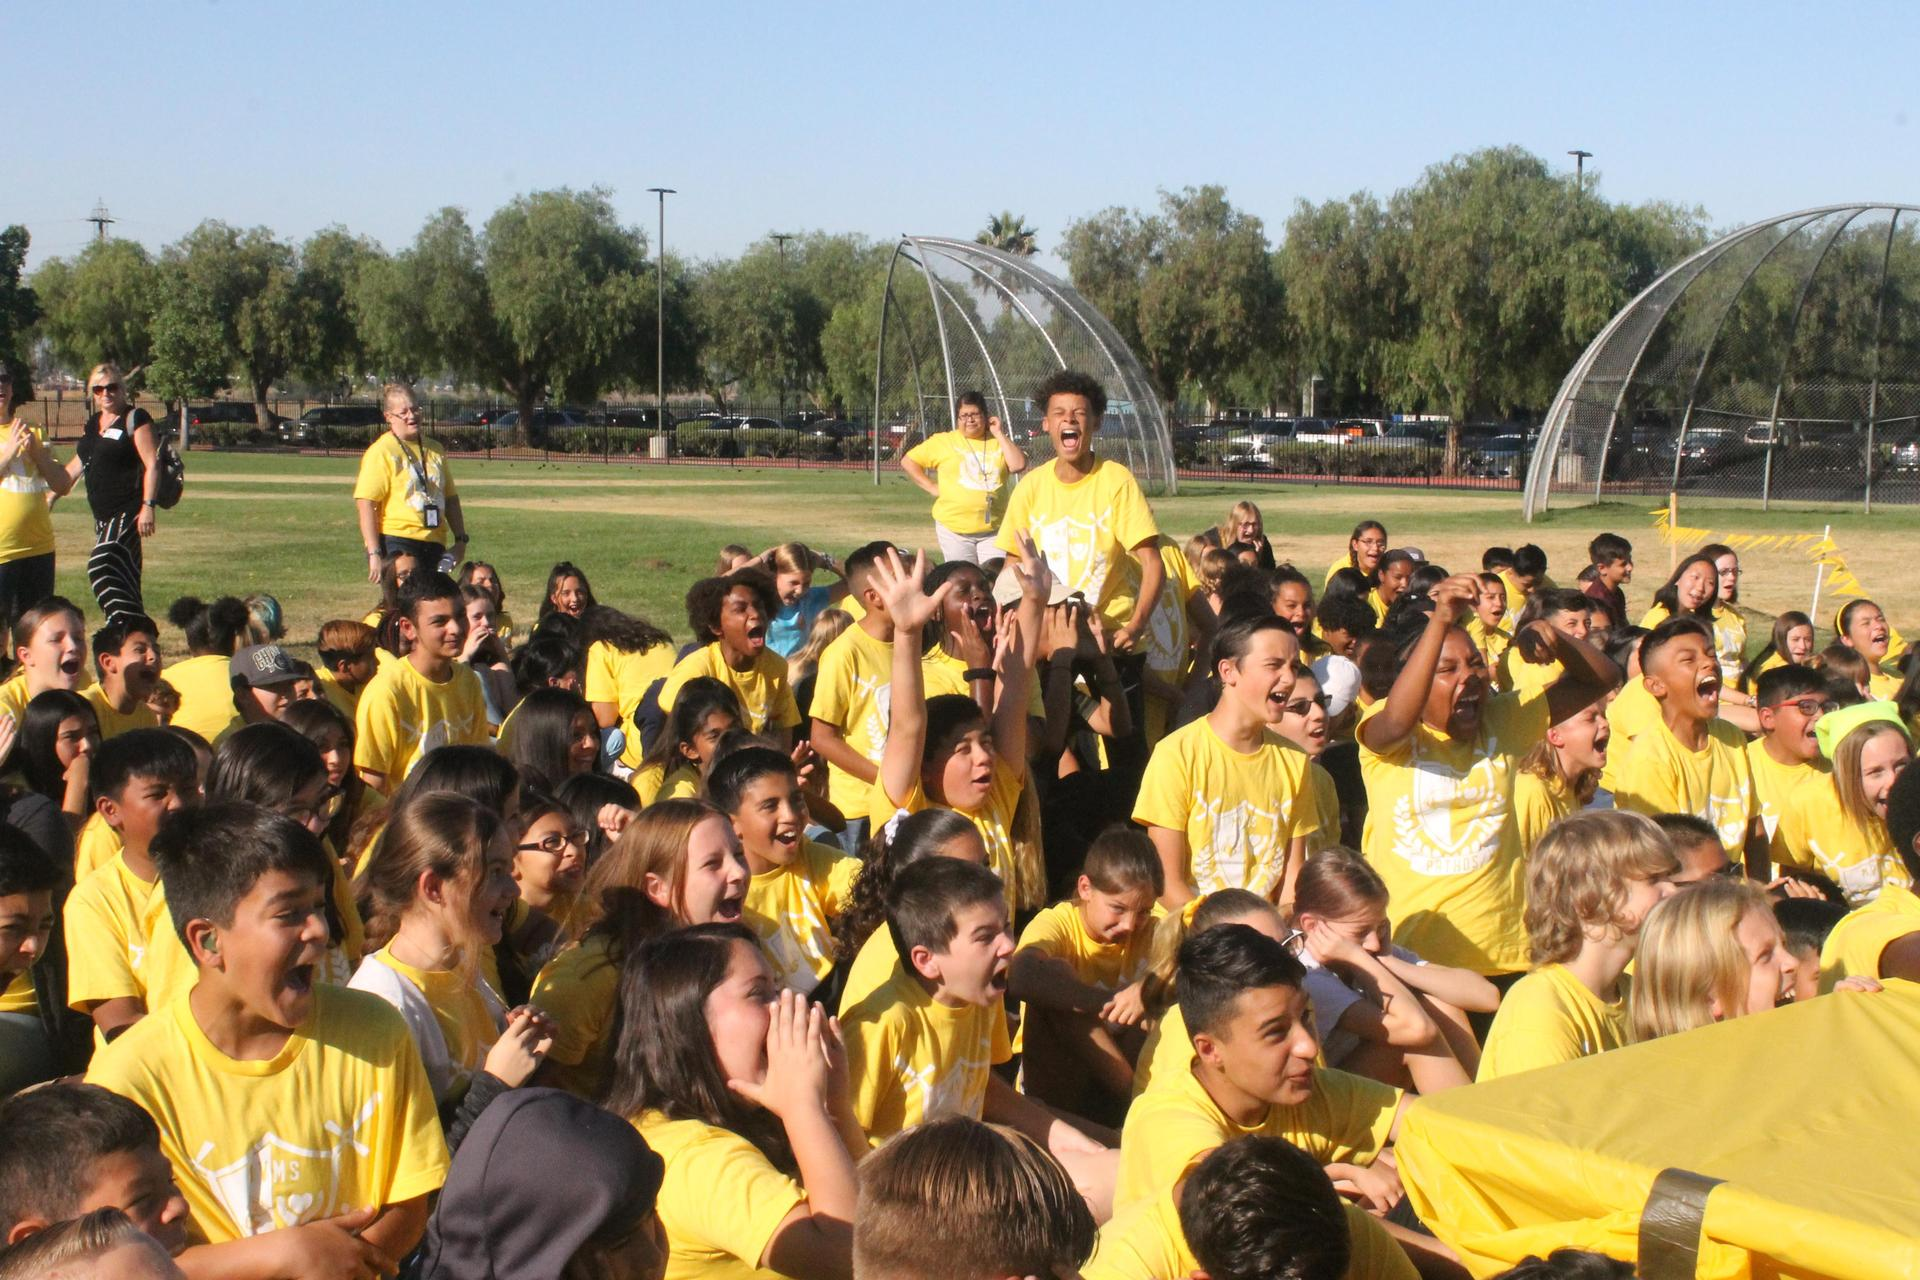 kids in yellow shirts